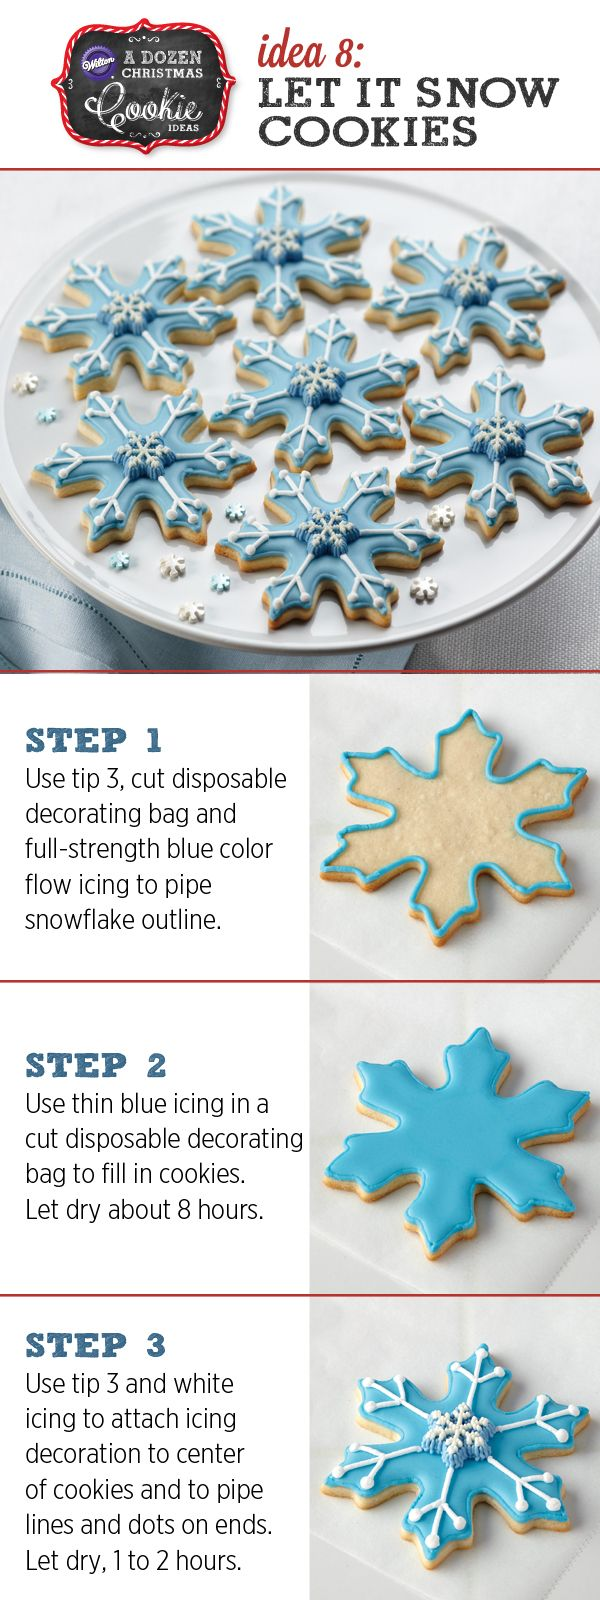 We're loving these understated Christmas Cookies: Let It Snowflake Cookies!  via #TheCookieCutterCompany